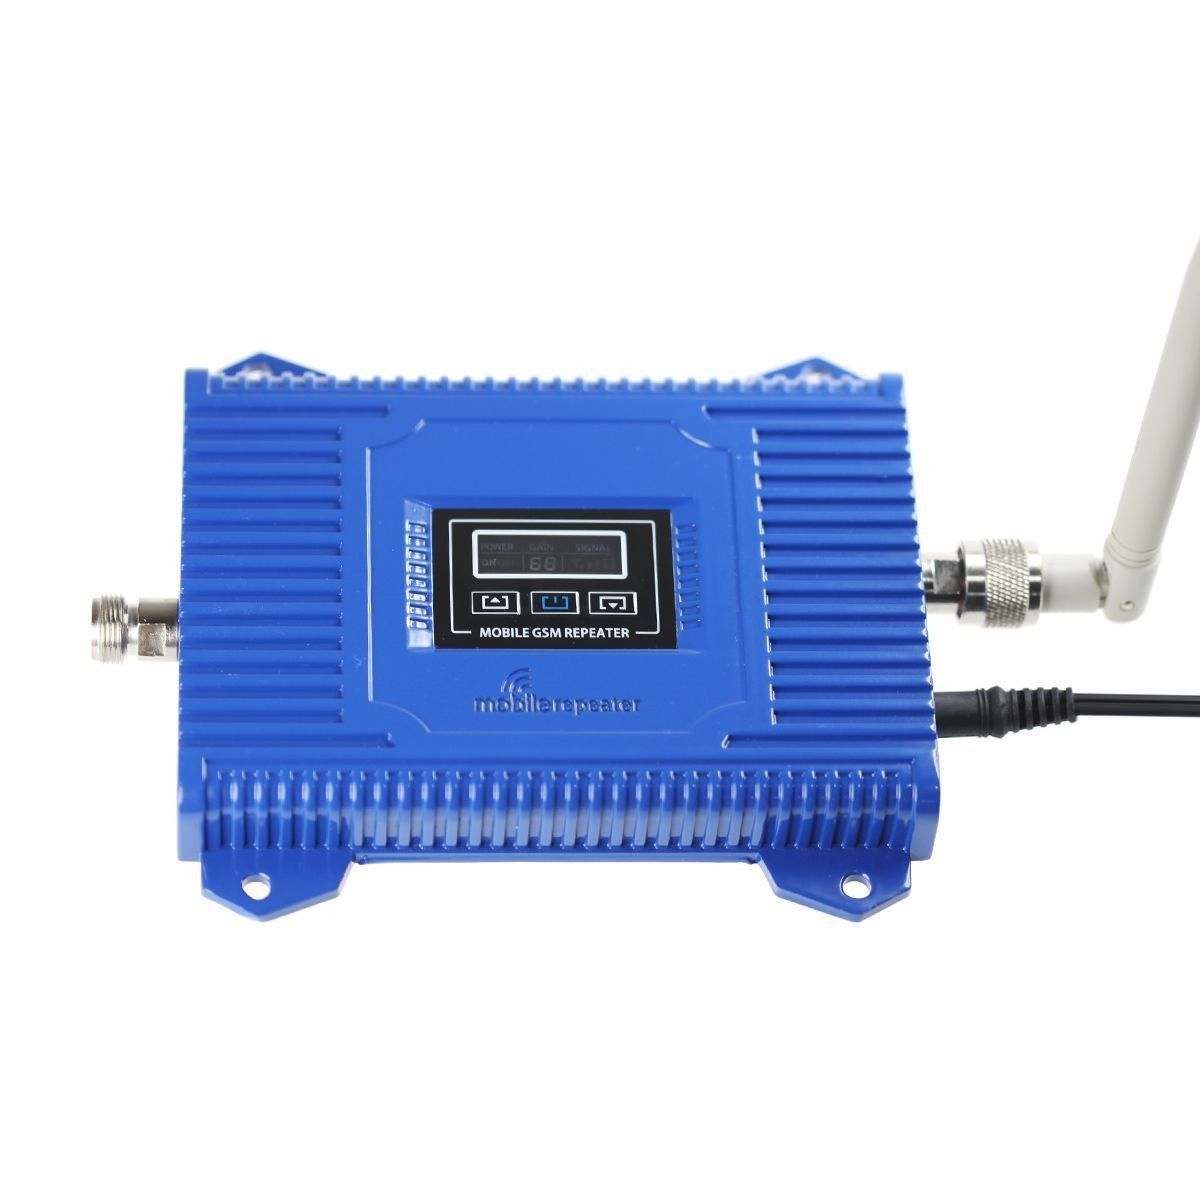 4G Signal Booster - 1800MHz - 250 SQM - 50 Users